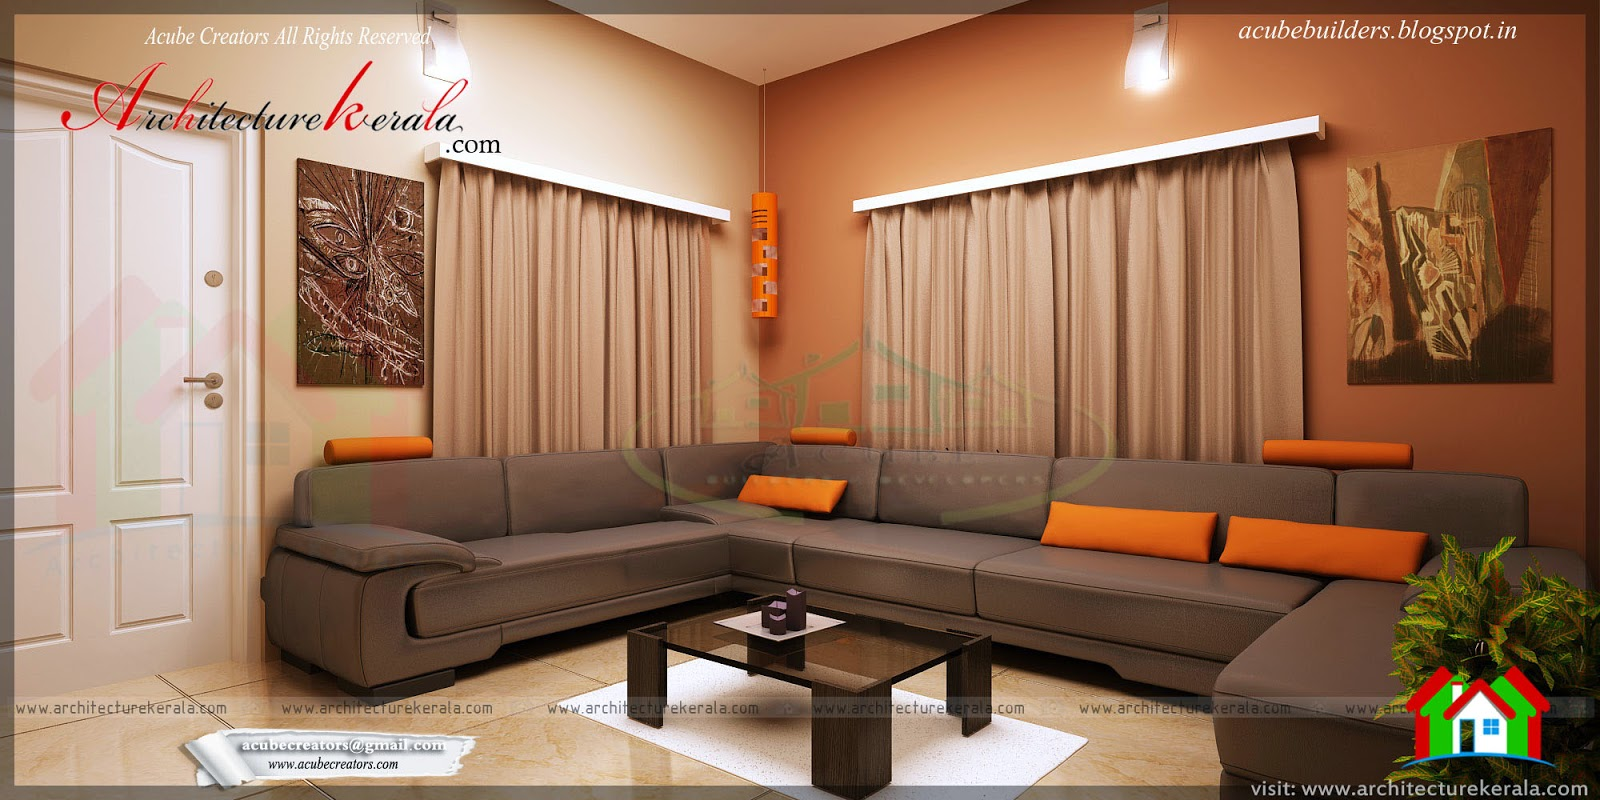 Drawing room interior design architecture kerala for Room interior design images